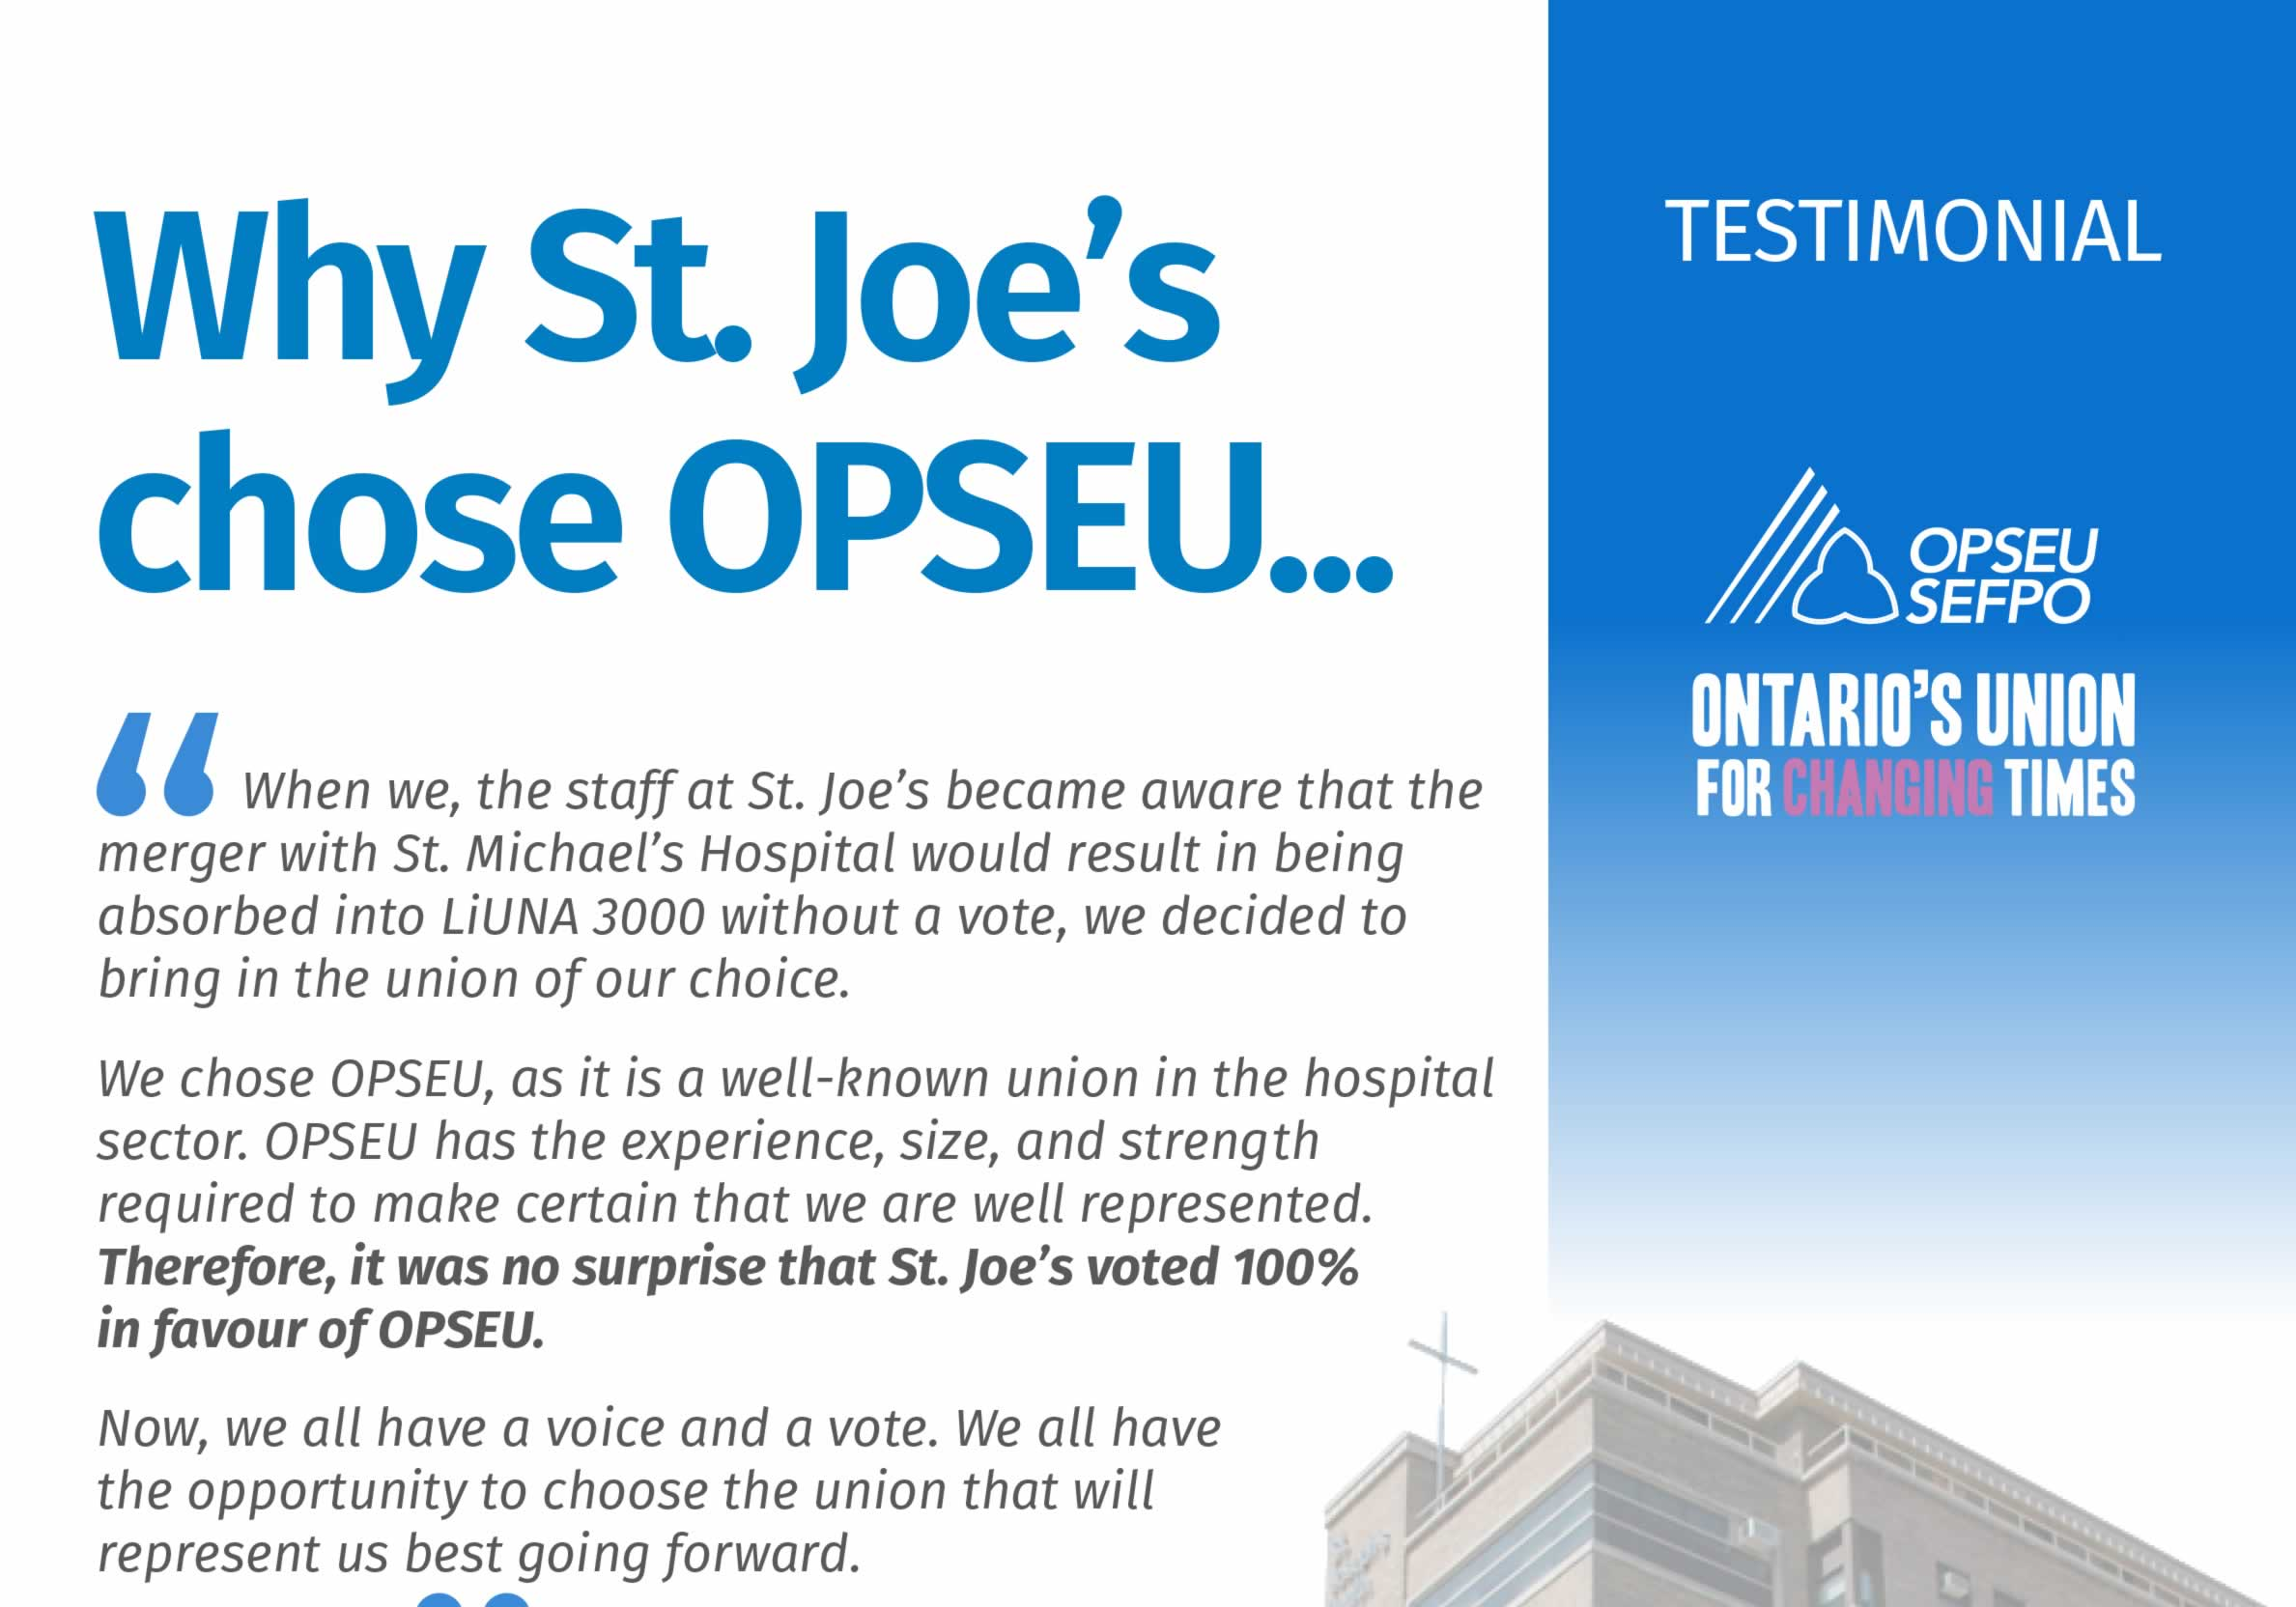 Why St. Joe's chose OPSEU testimonial